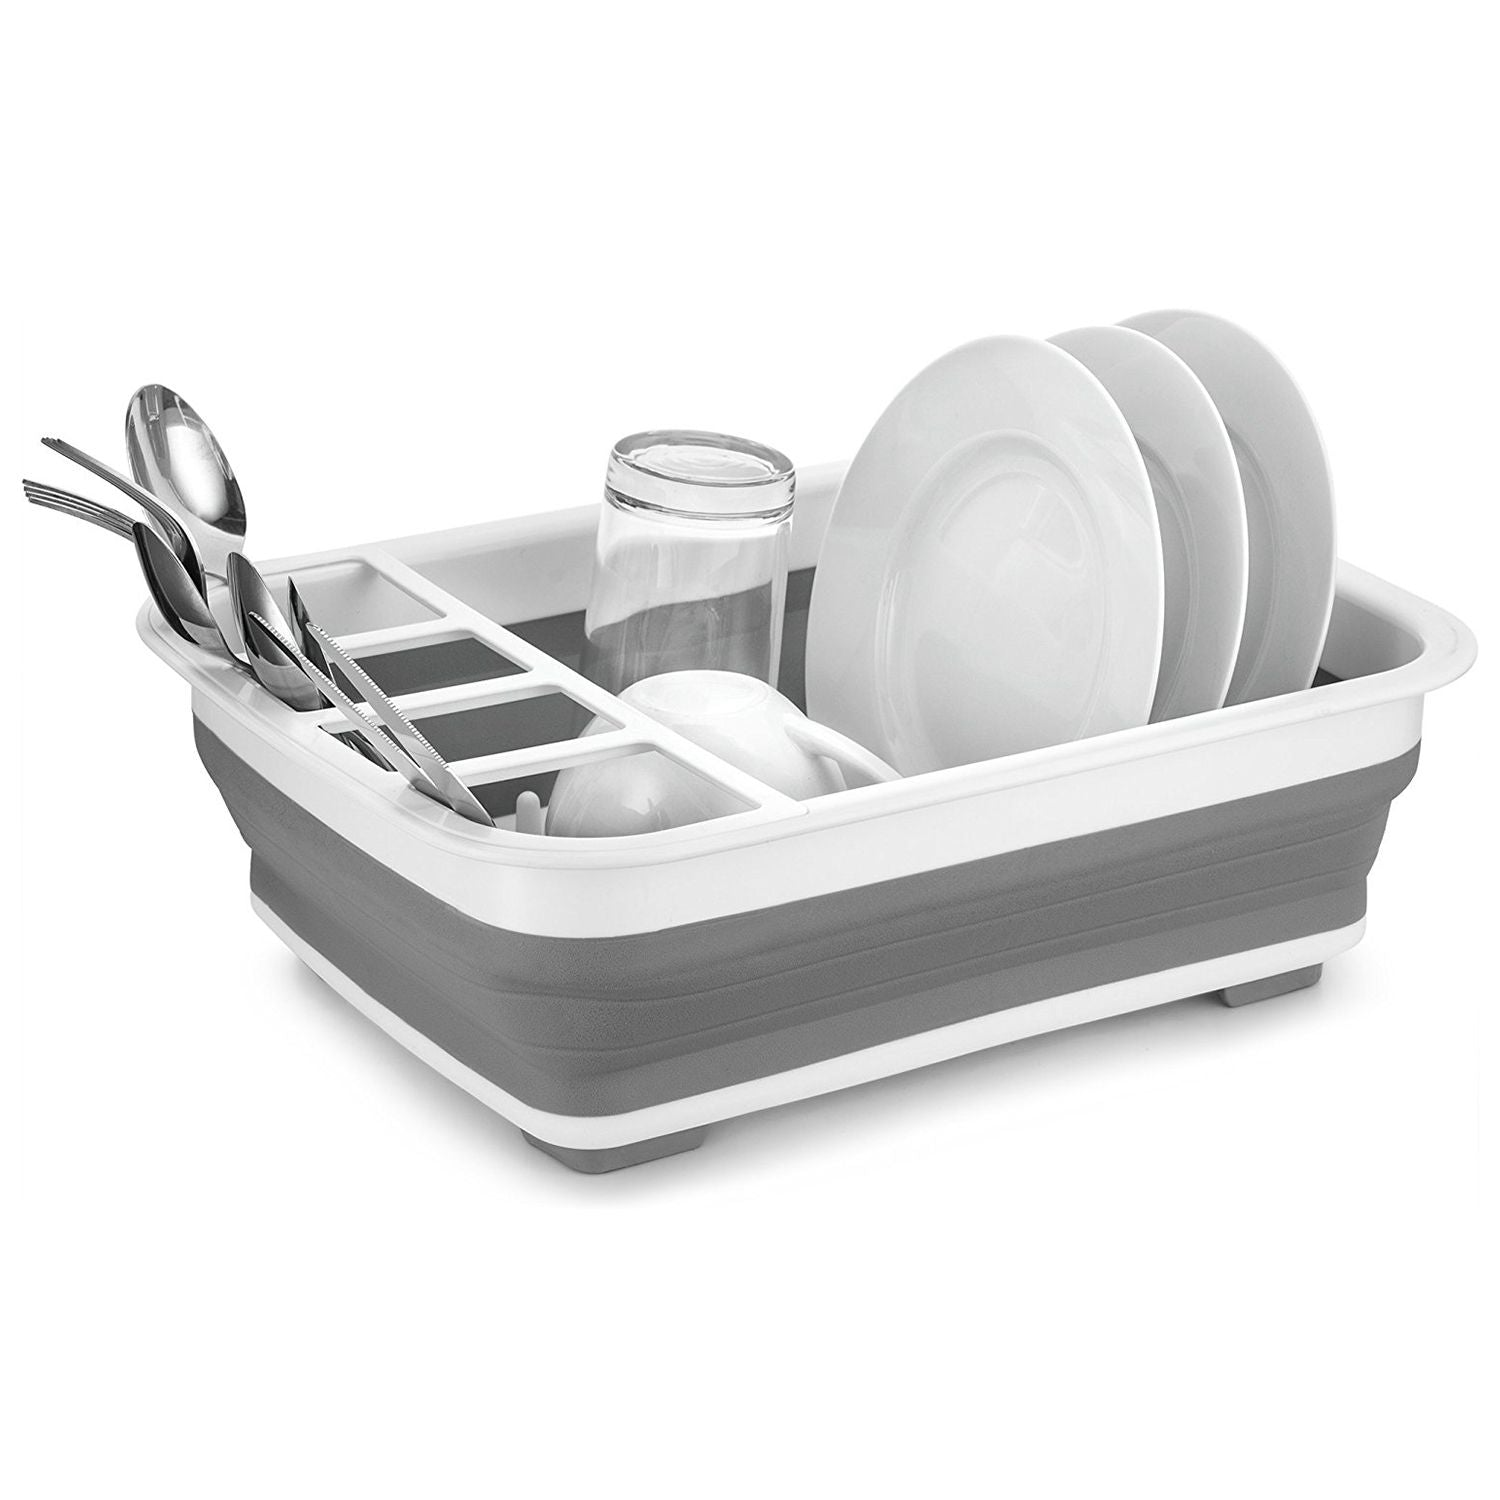 Collapsible Dish Rack